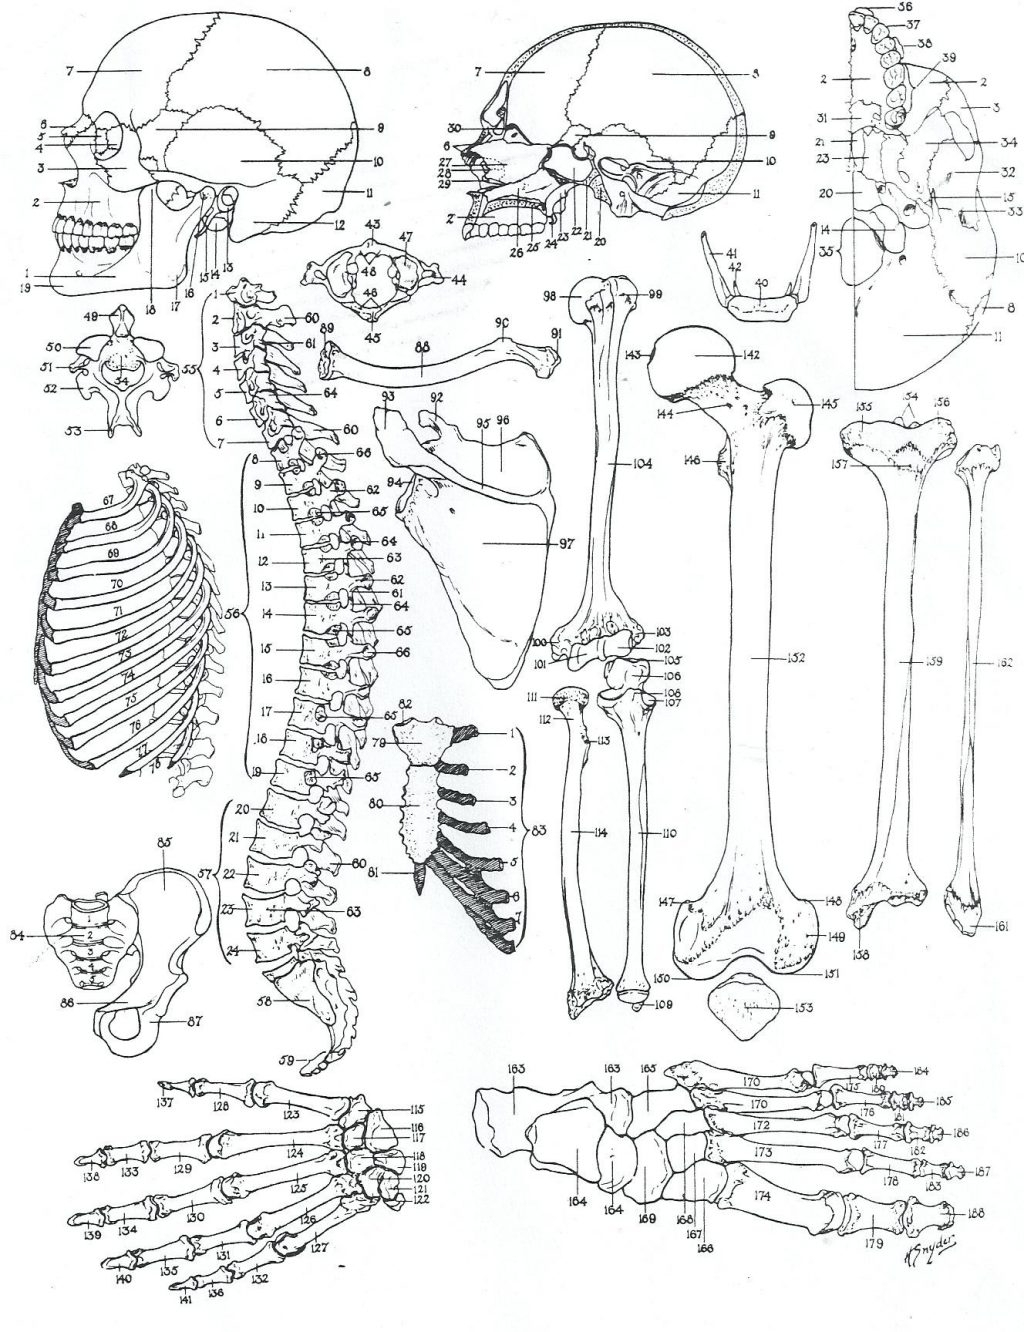 Coloring Page ~ Anatomy Coloring Pages Dechome Me And Book For Kids - Free Printable Human Anatomy Coloring Pages